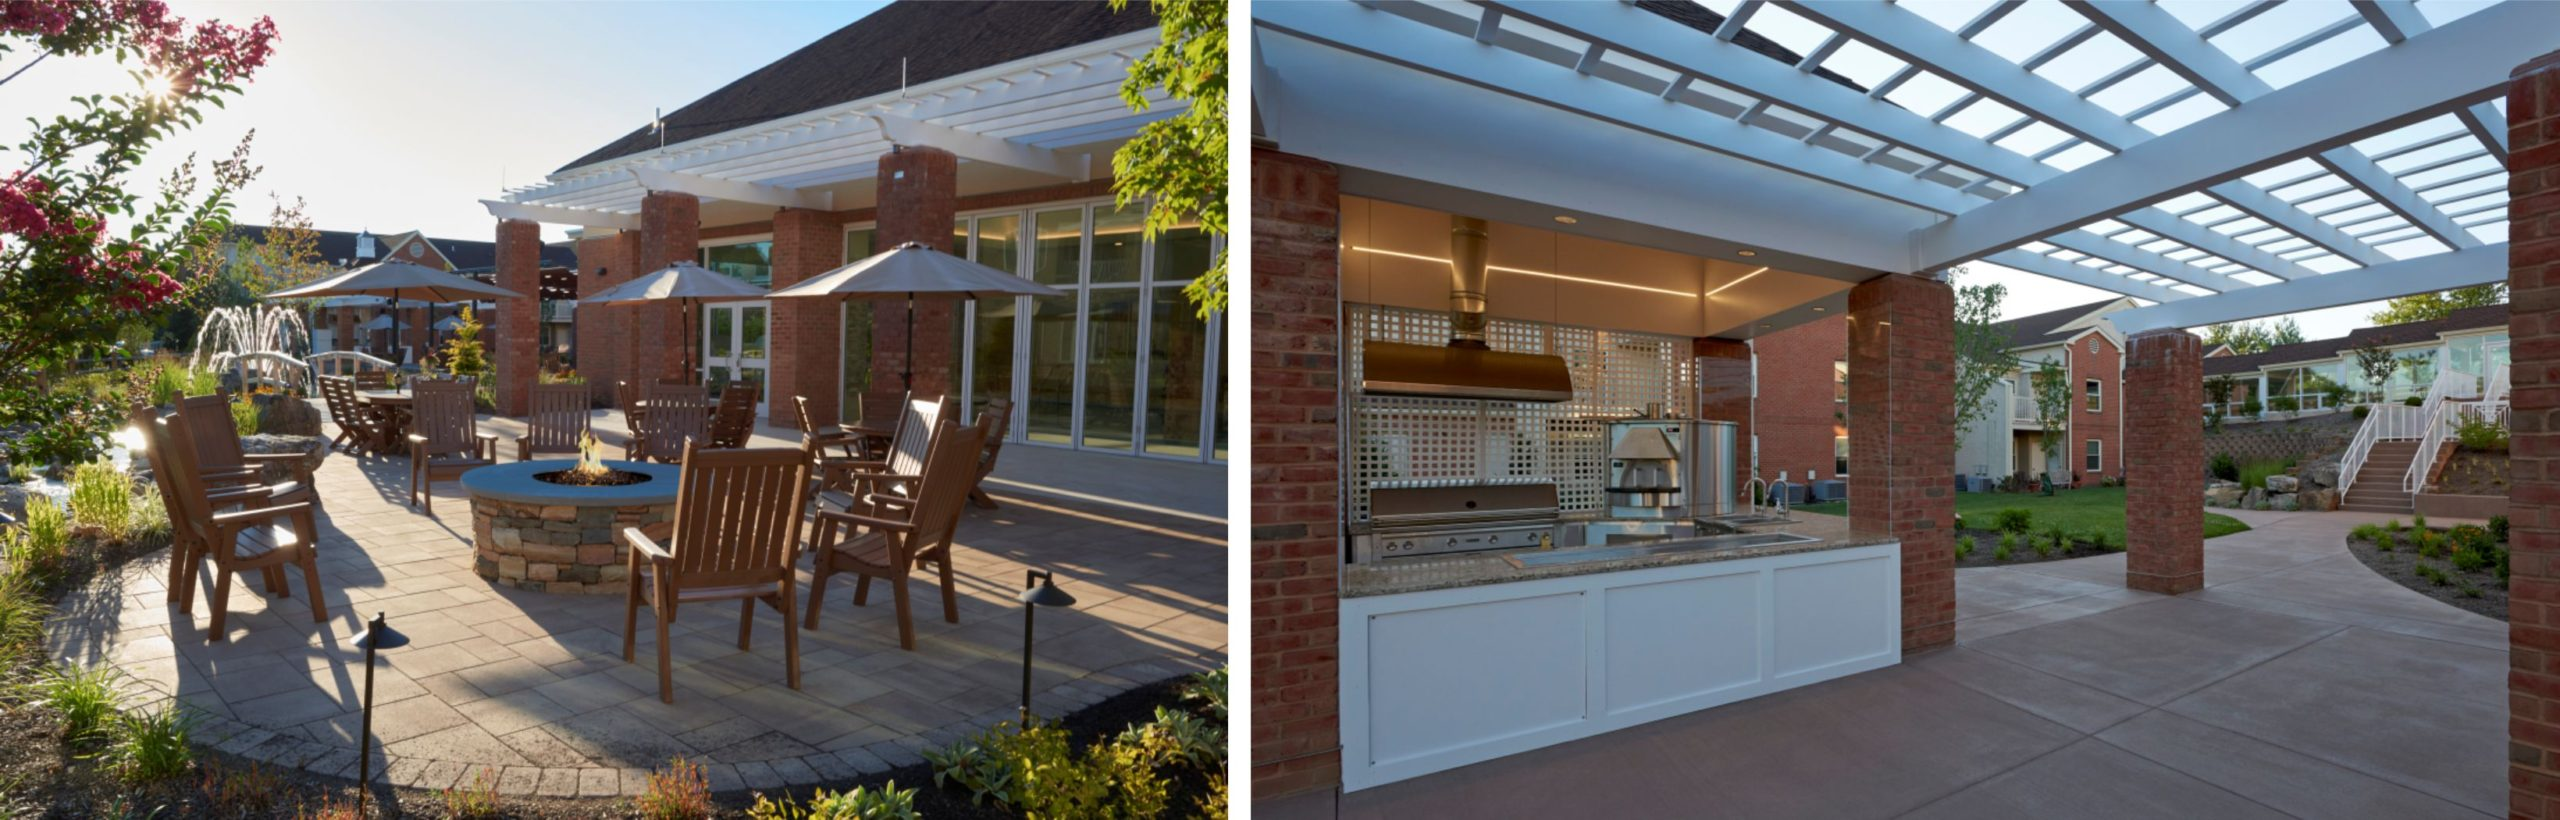 multi-functional venues are one of the design trends for outdoor spaces